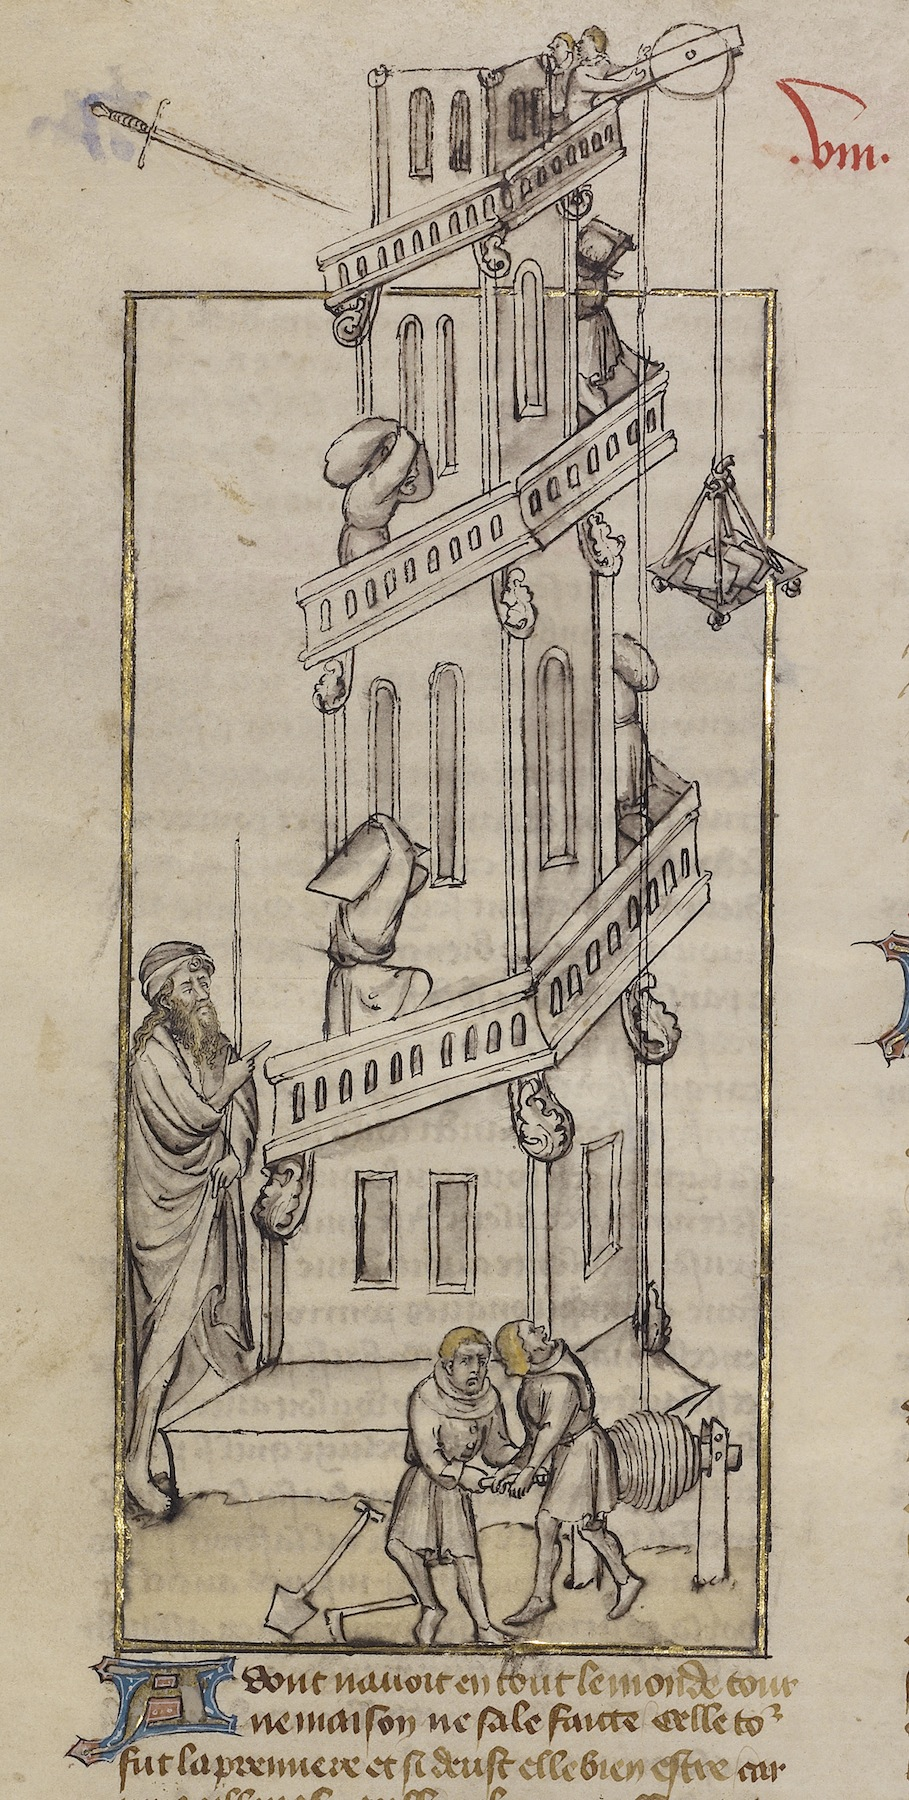 The Building of the Tower of Babel; First Master of the Bible historiale of Jean de Berry (French, active about 1390 - about 1400), Unknown; Paris, France; about 1390 - 1400; Tempera colors, colored washes, gold leaf, and ink on parchment; Leaf: 37.8 x 29.8 cm (14 7/8 x 11 3/4 in.); Ms. Ludwig XIII 3, leaf 2v